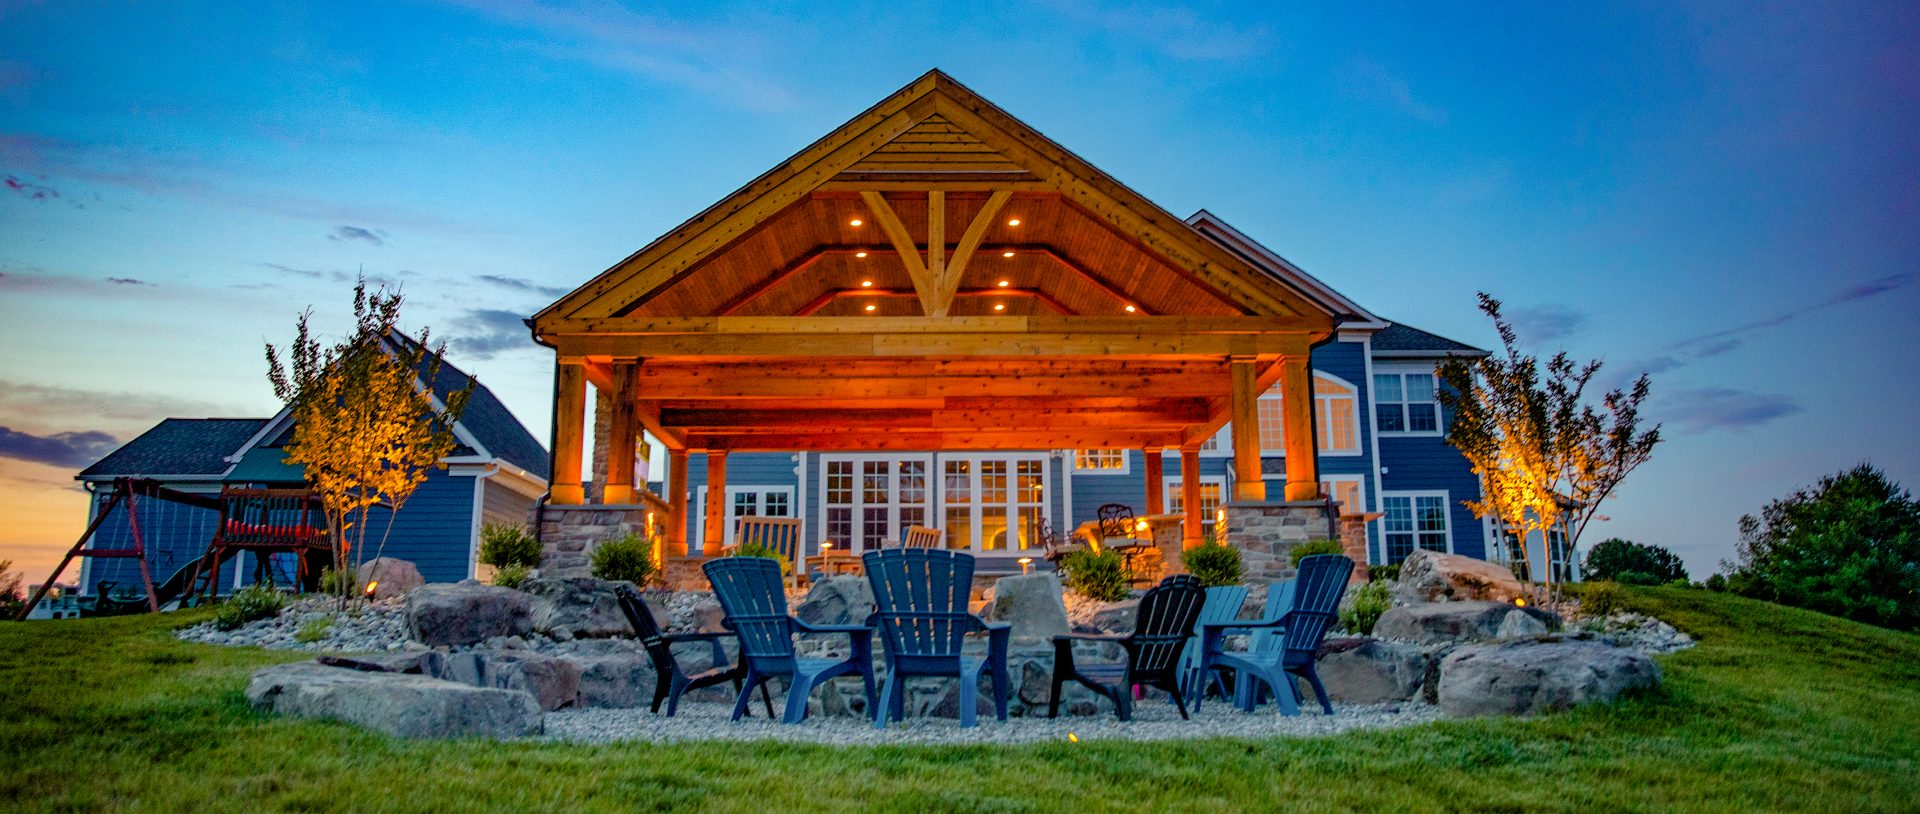 howard county landscaping